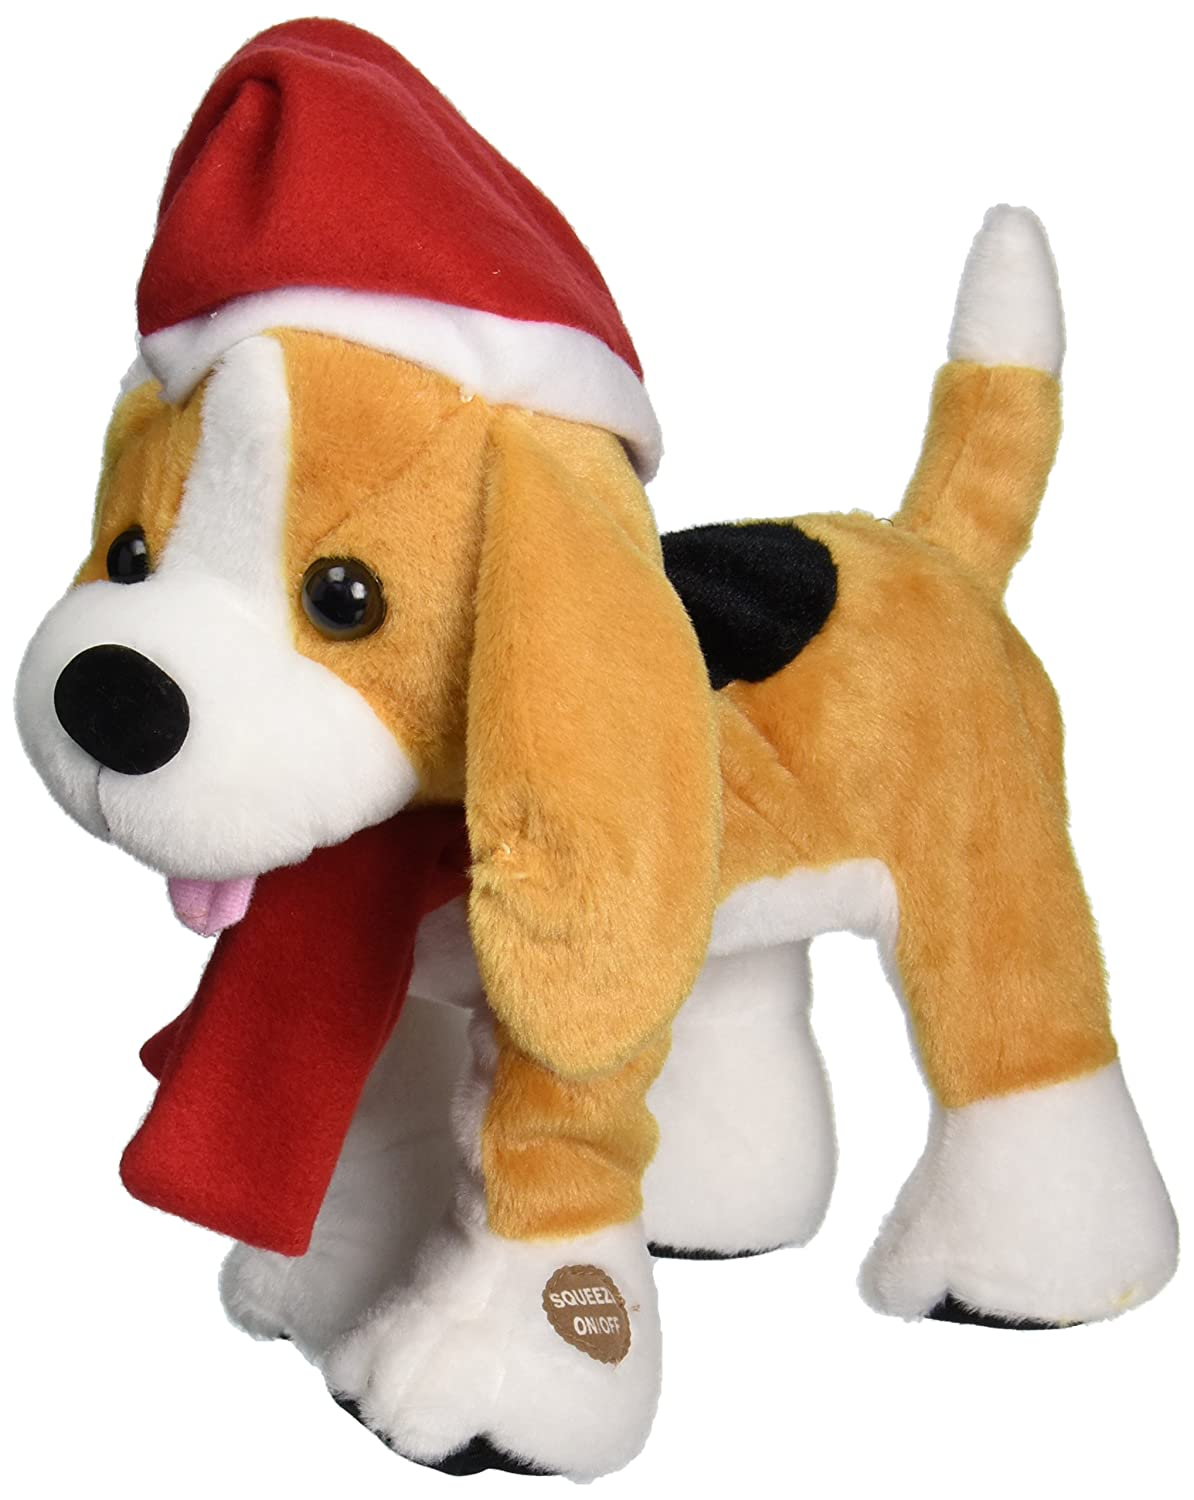 Chantilly Lane Barney The Christmas Beagle Plush by Chantilly Lane